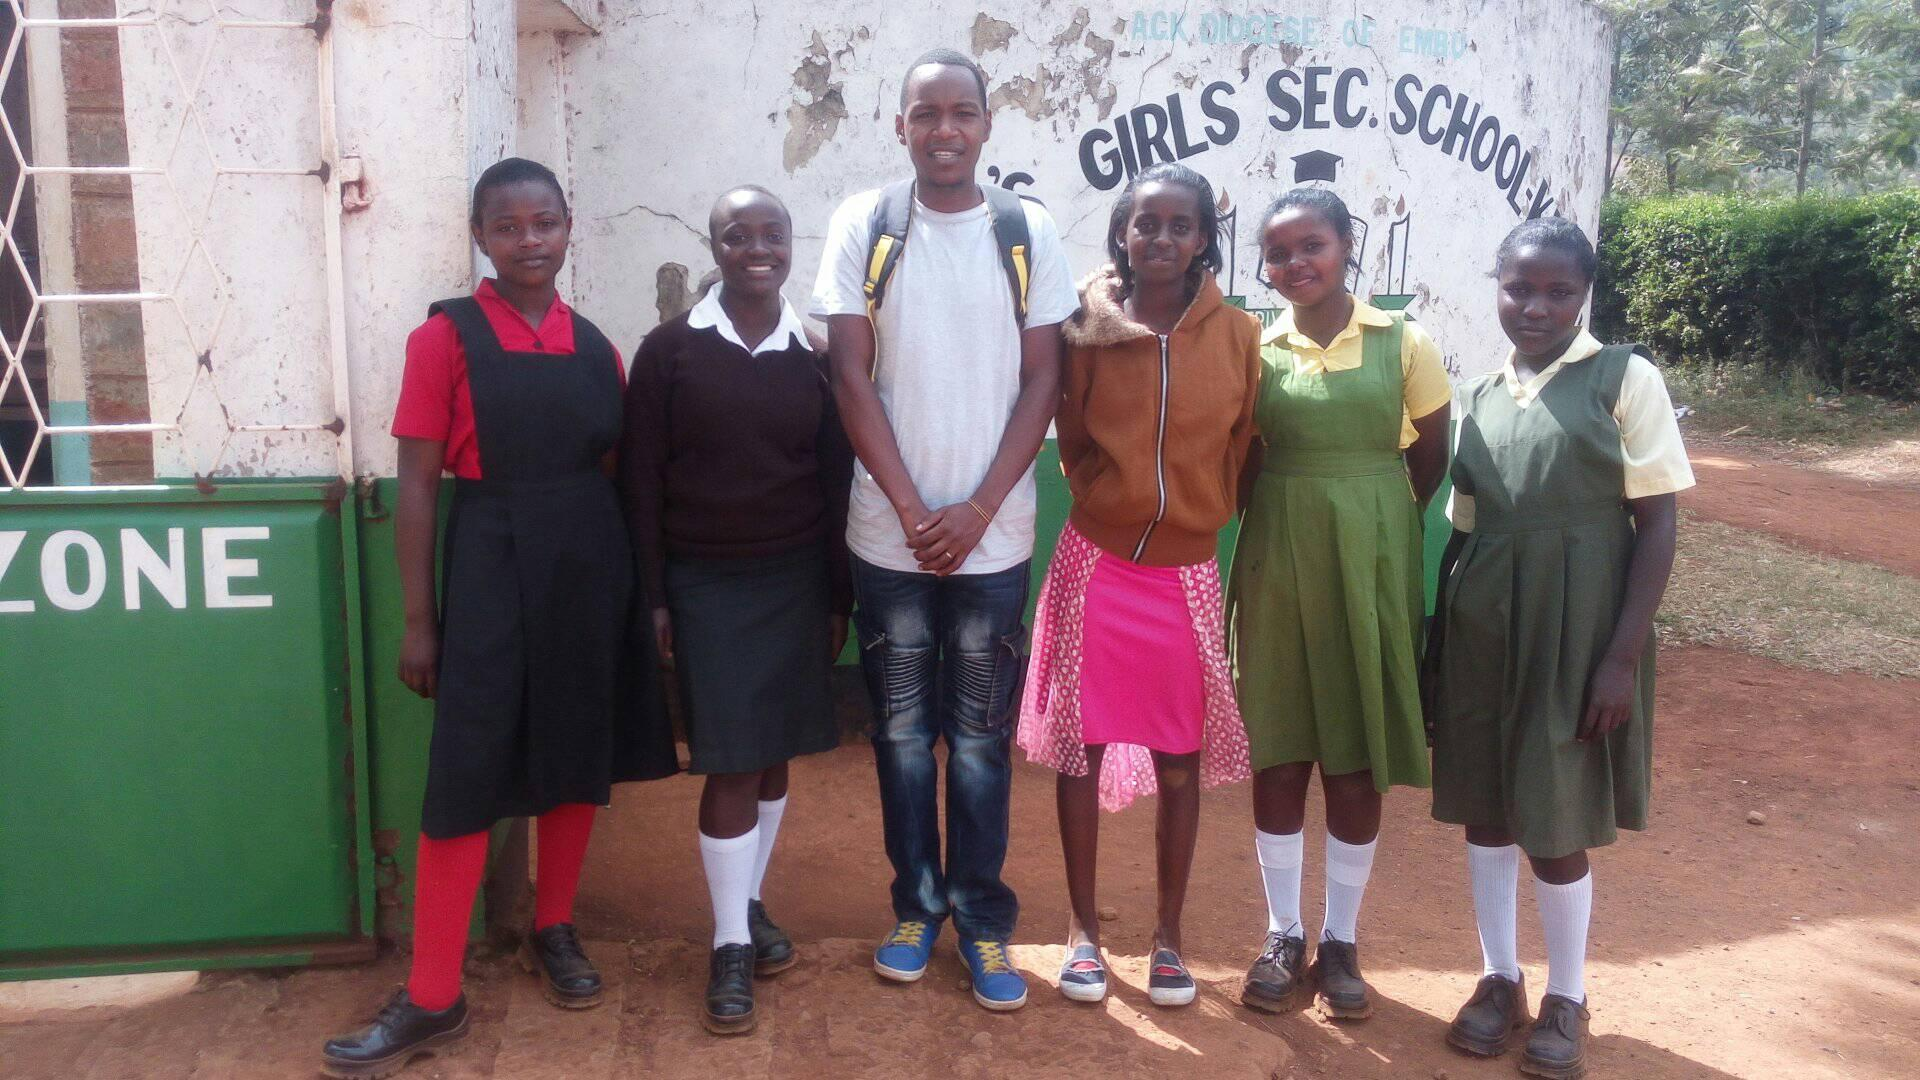 All of the new sponsored high school girls, along with Evelyn, were able to enroll at St. John's Secondary School.